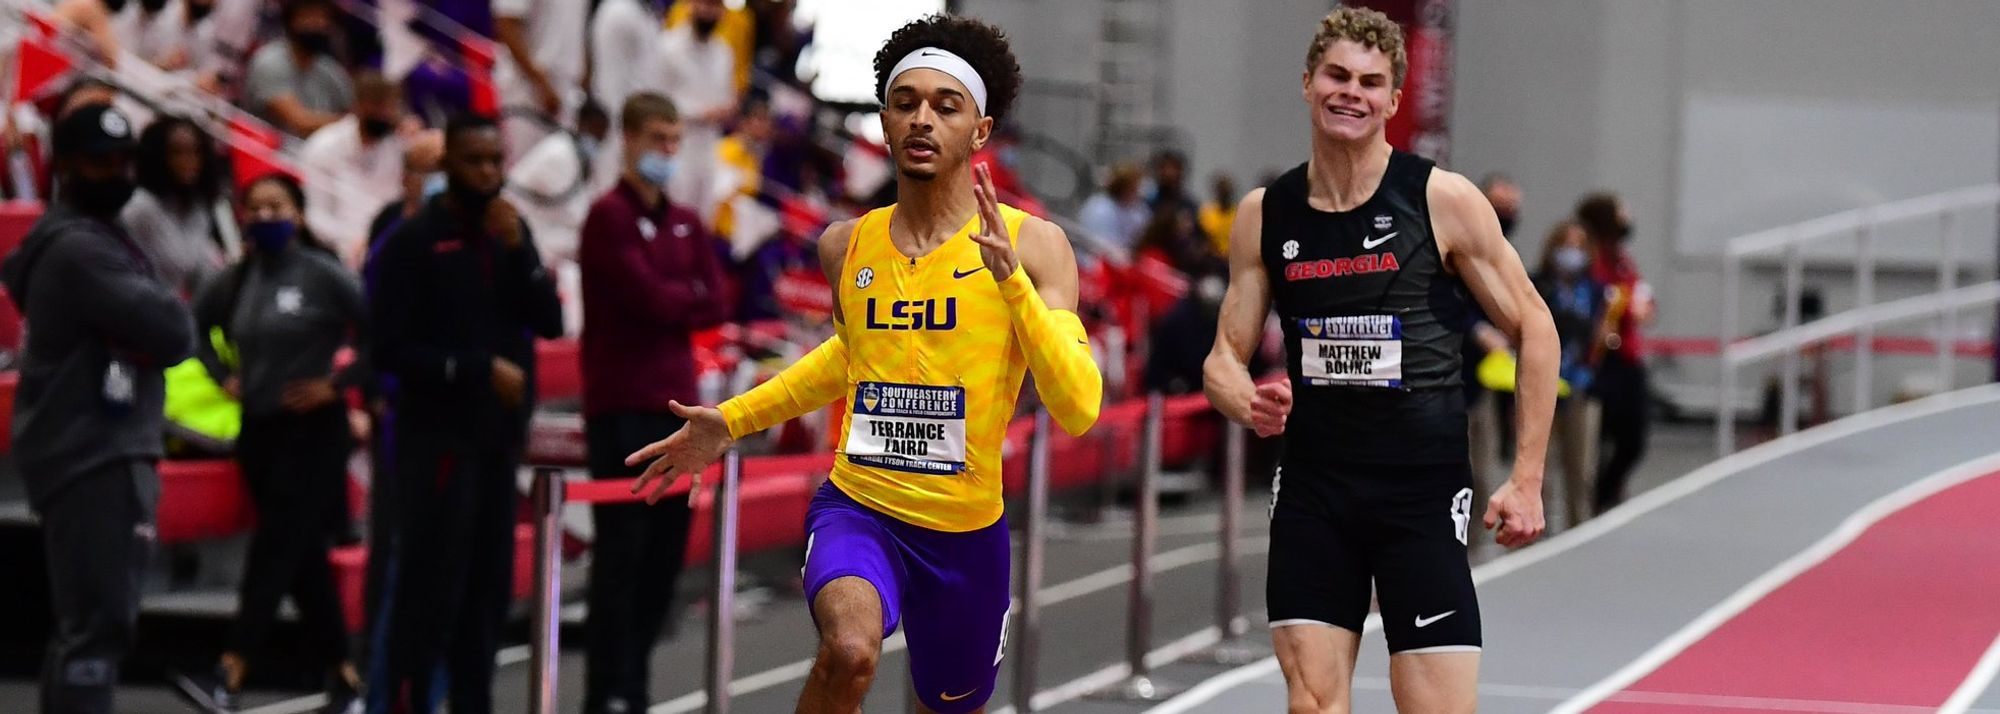 Terrance Laird and JuVaughn Harrison jumped to the top of the world lists in their respective disciplines during a busy weekend of US collegiate conference championships action.